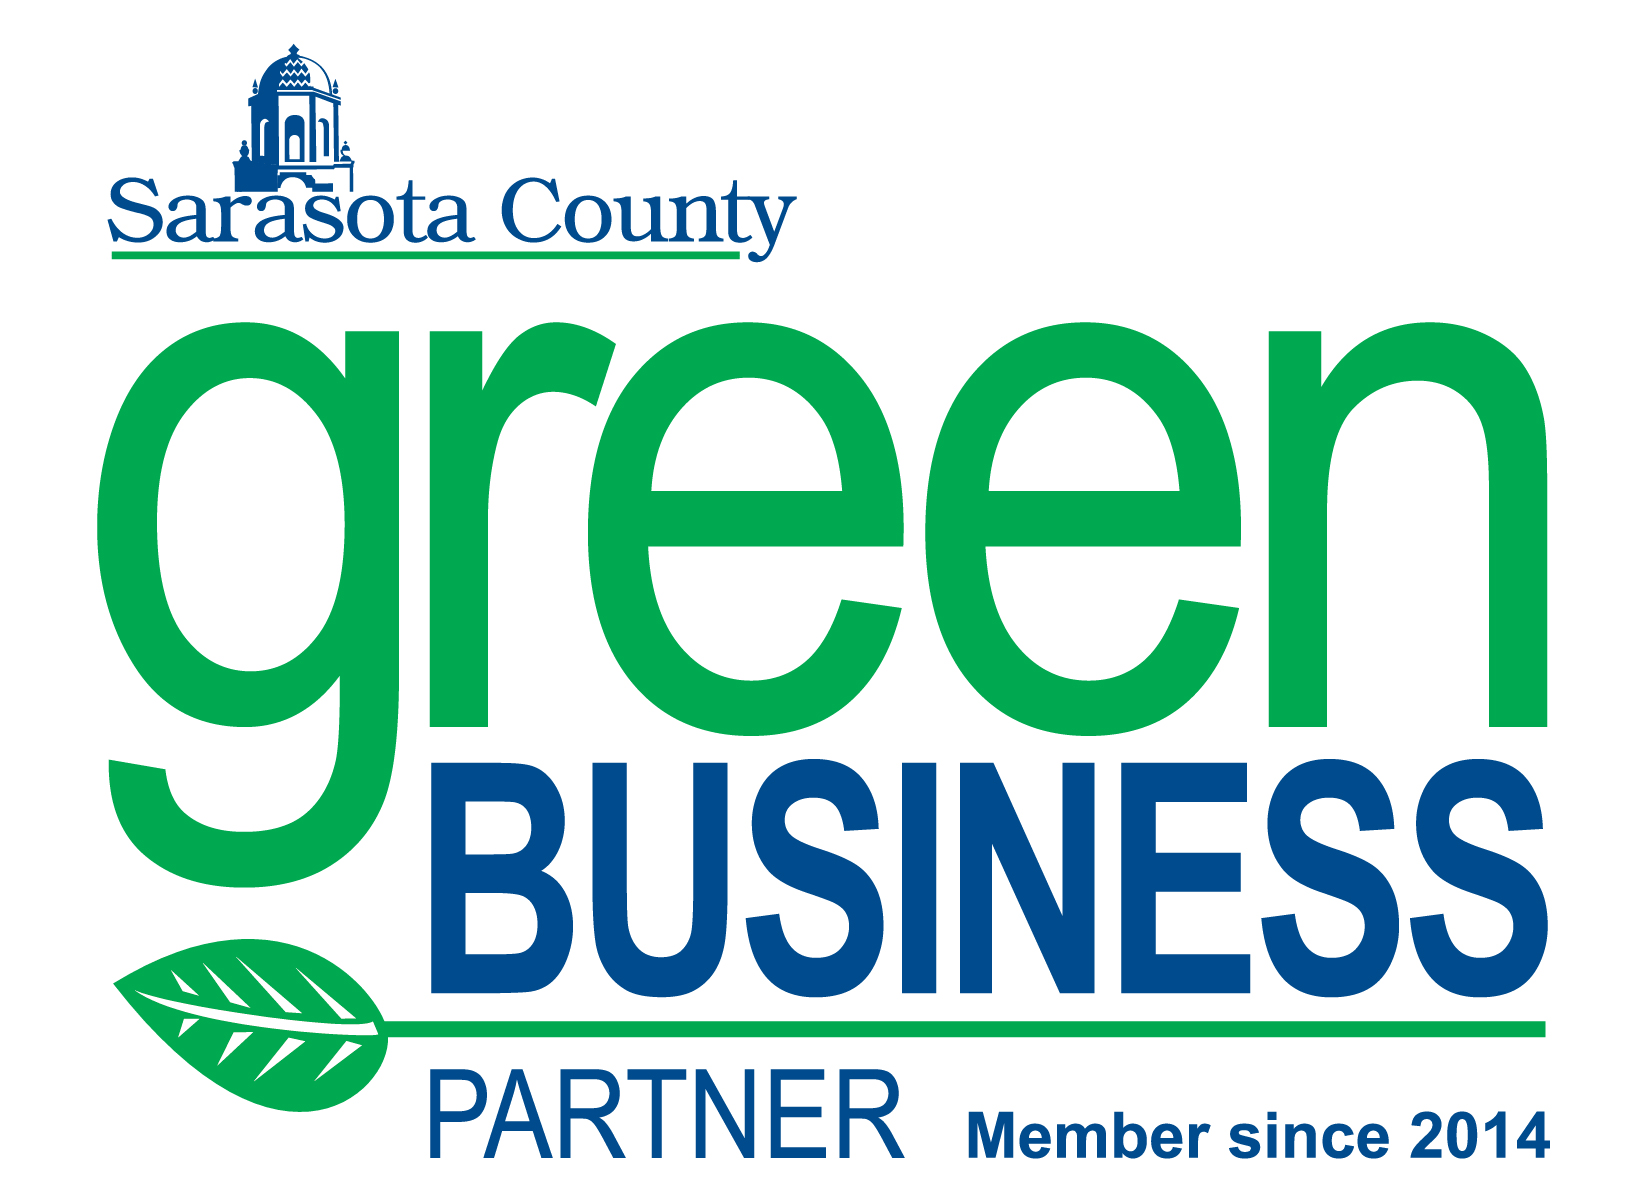 Sarasota County Green Business - Establishing our partnership in 2014, Crystal Clean Green Cleaning has maintained and improved its business standards. The SCGBP has recently been transferred to, and being managed by, USF.